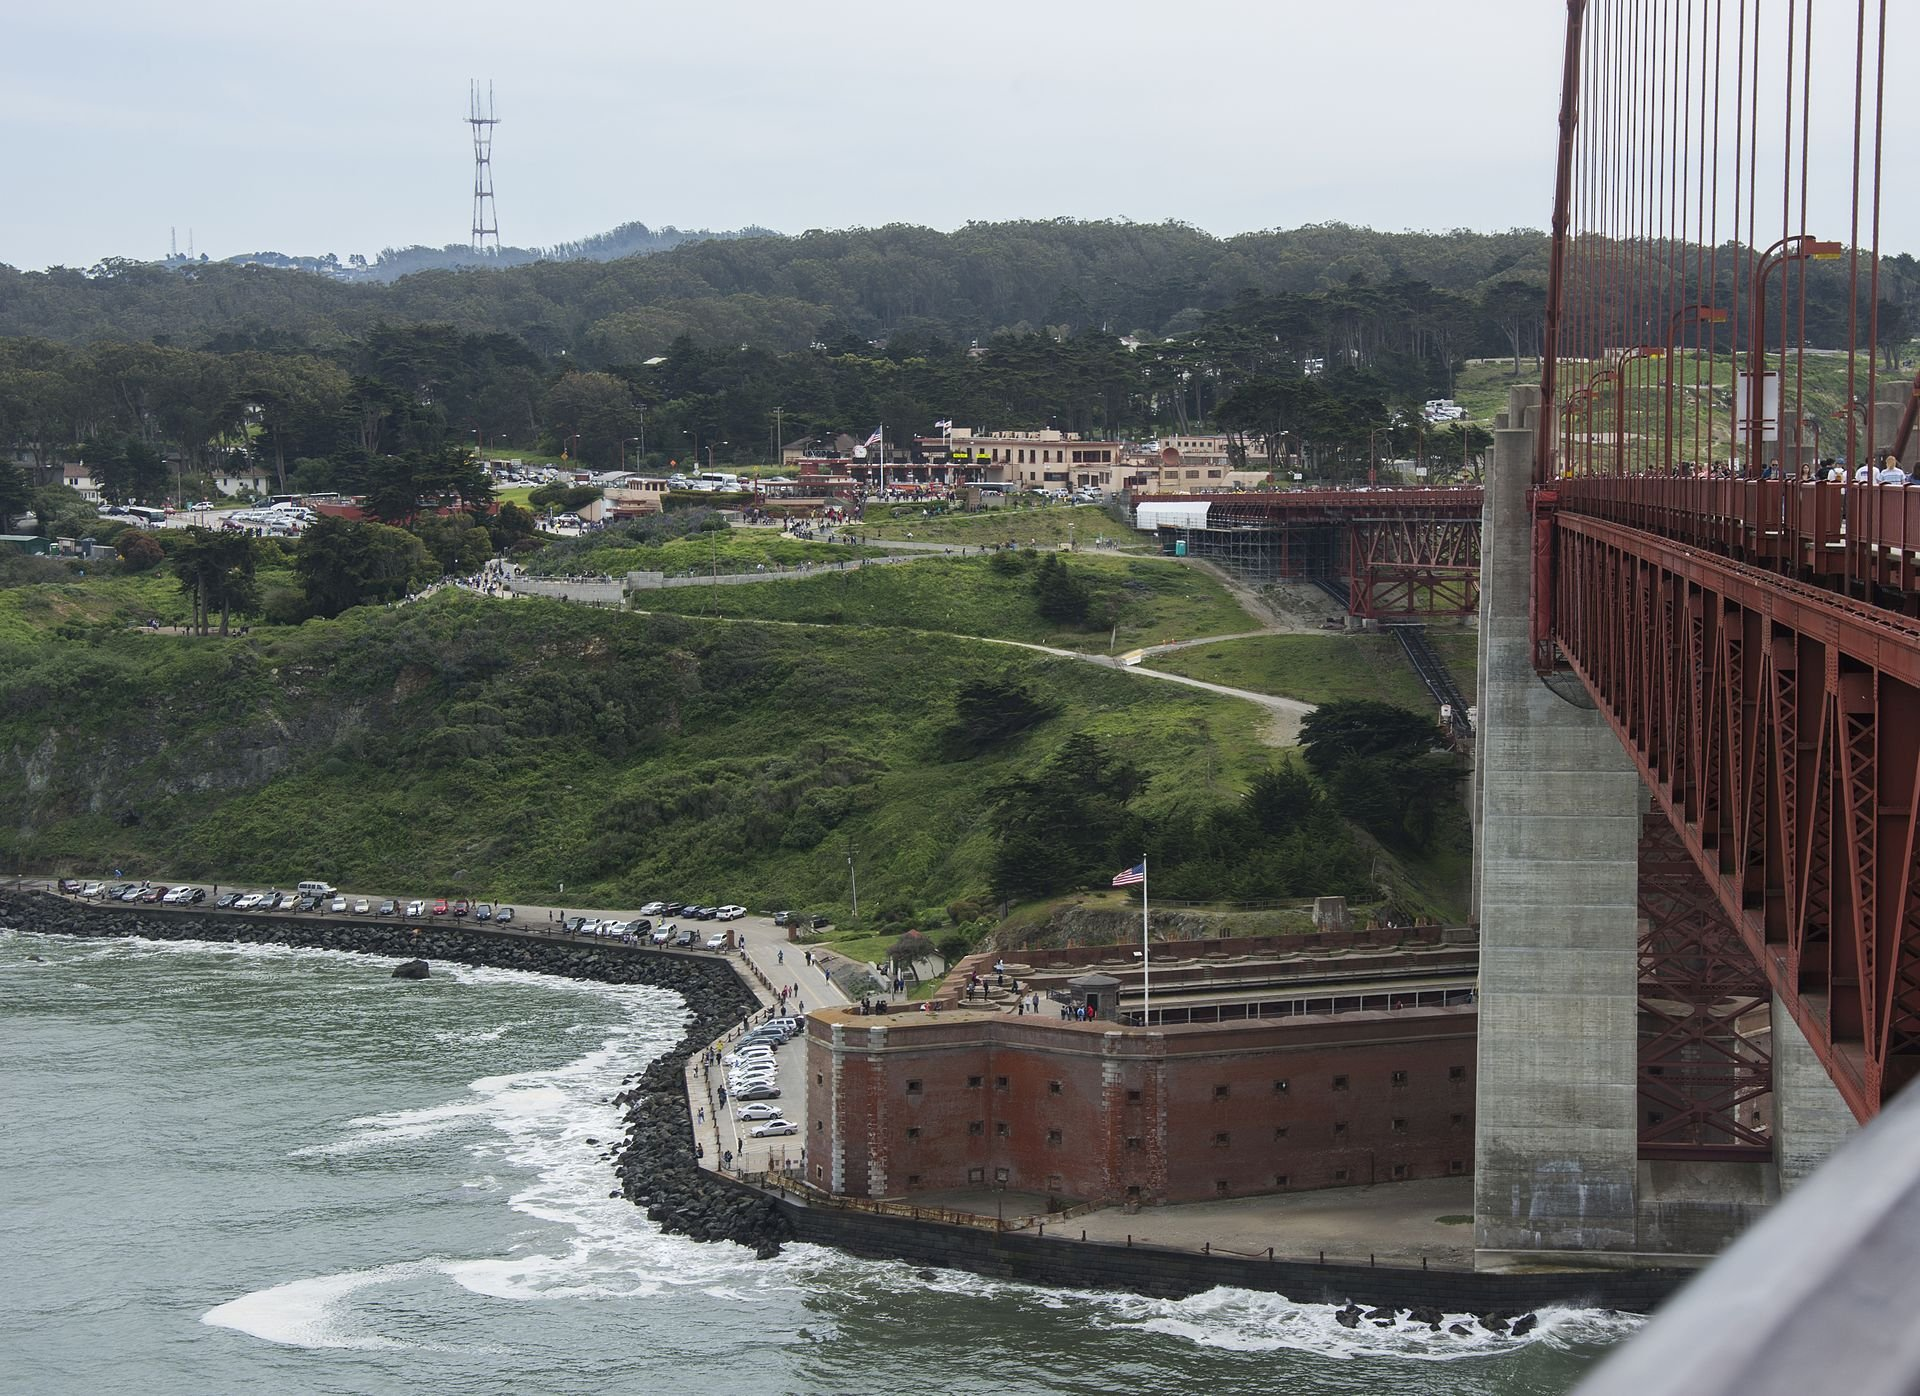 The fort as seen from the Golden Gate Bridge. The fort was saved from demolition thanks for the arched design of the bridge. Photo Credit: MJ, via Wikimedia Commons.